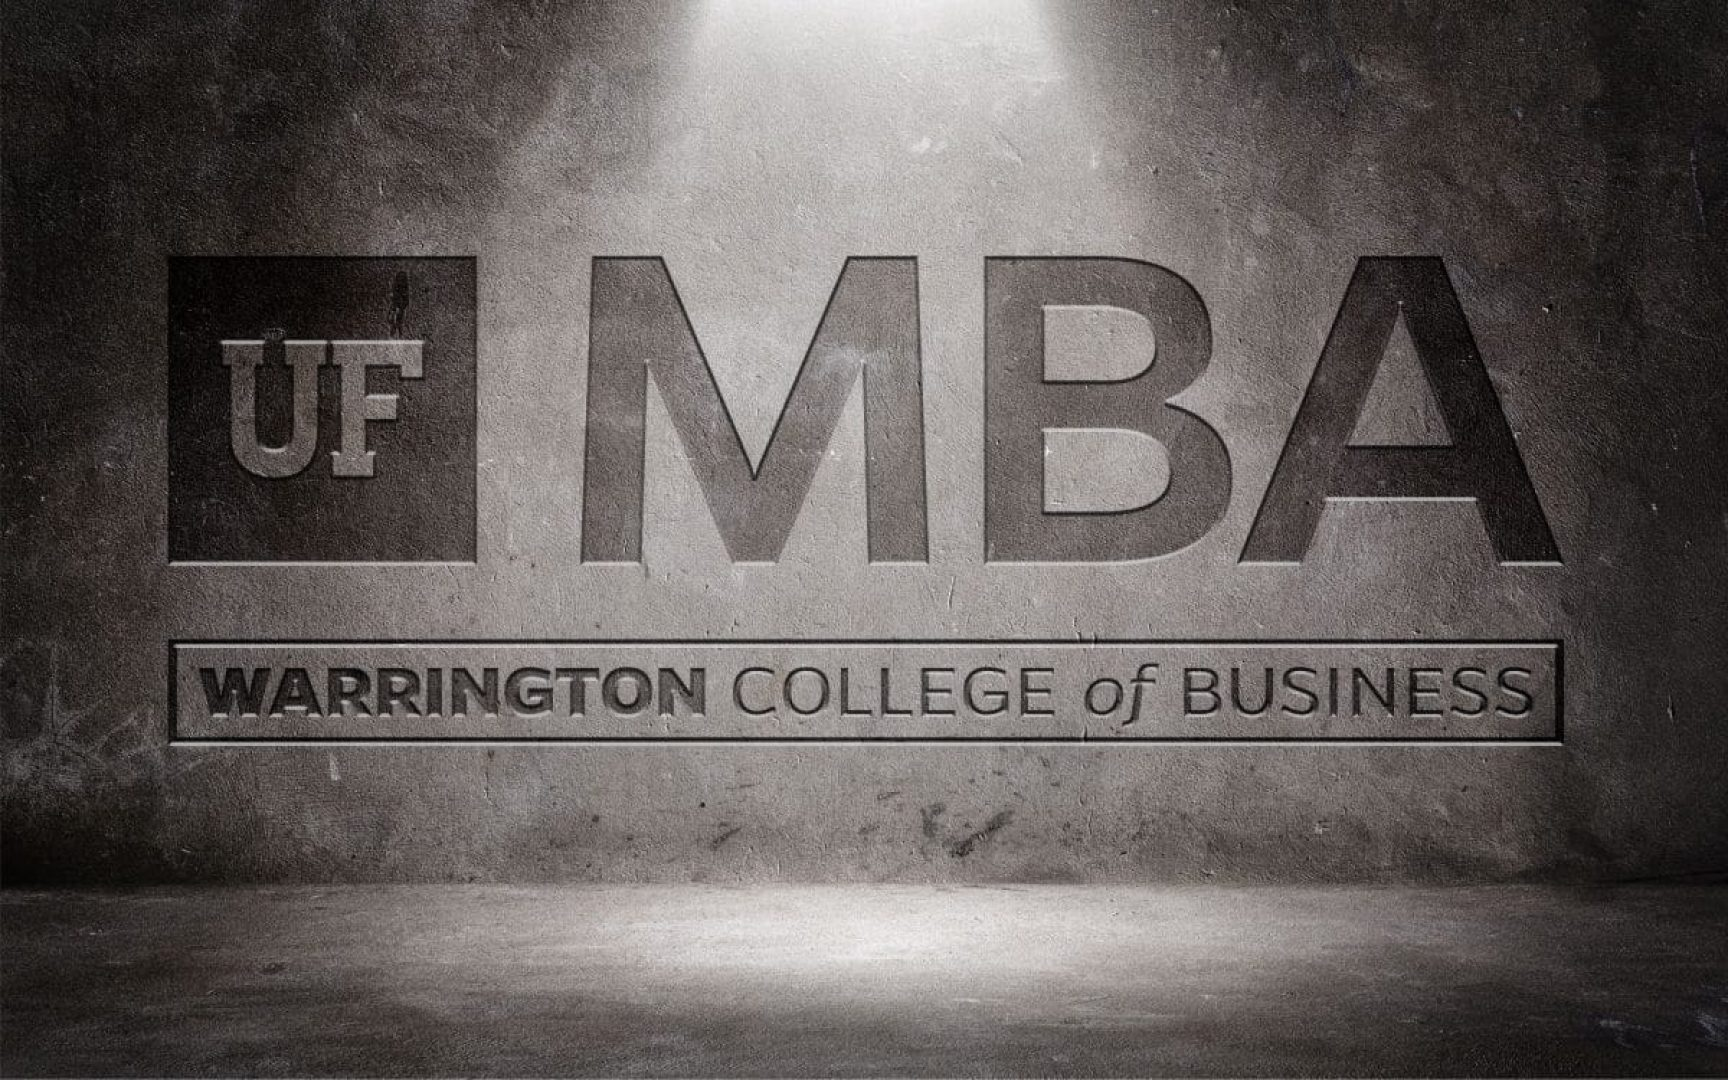 UF MBA logo etched in stone